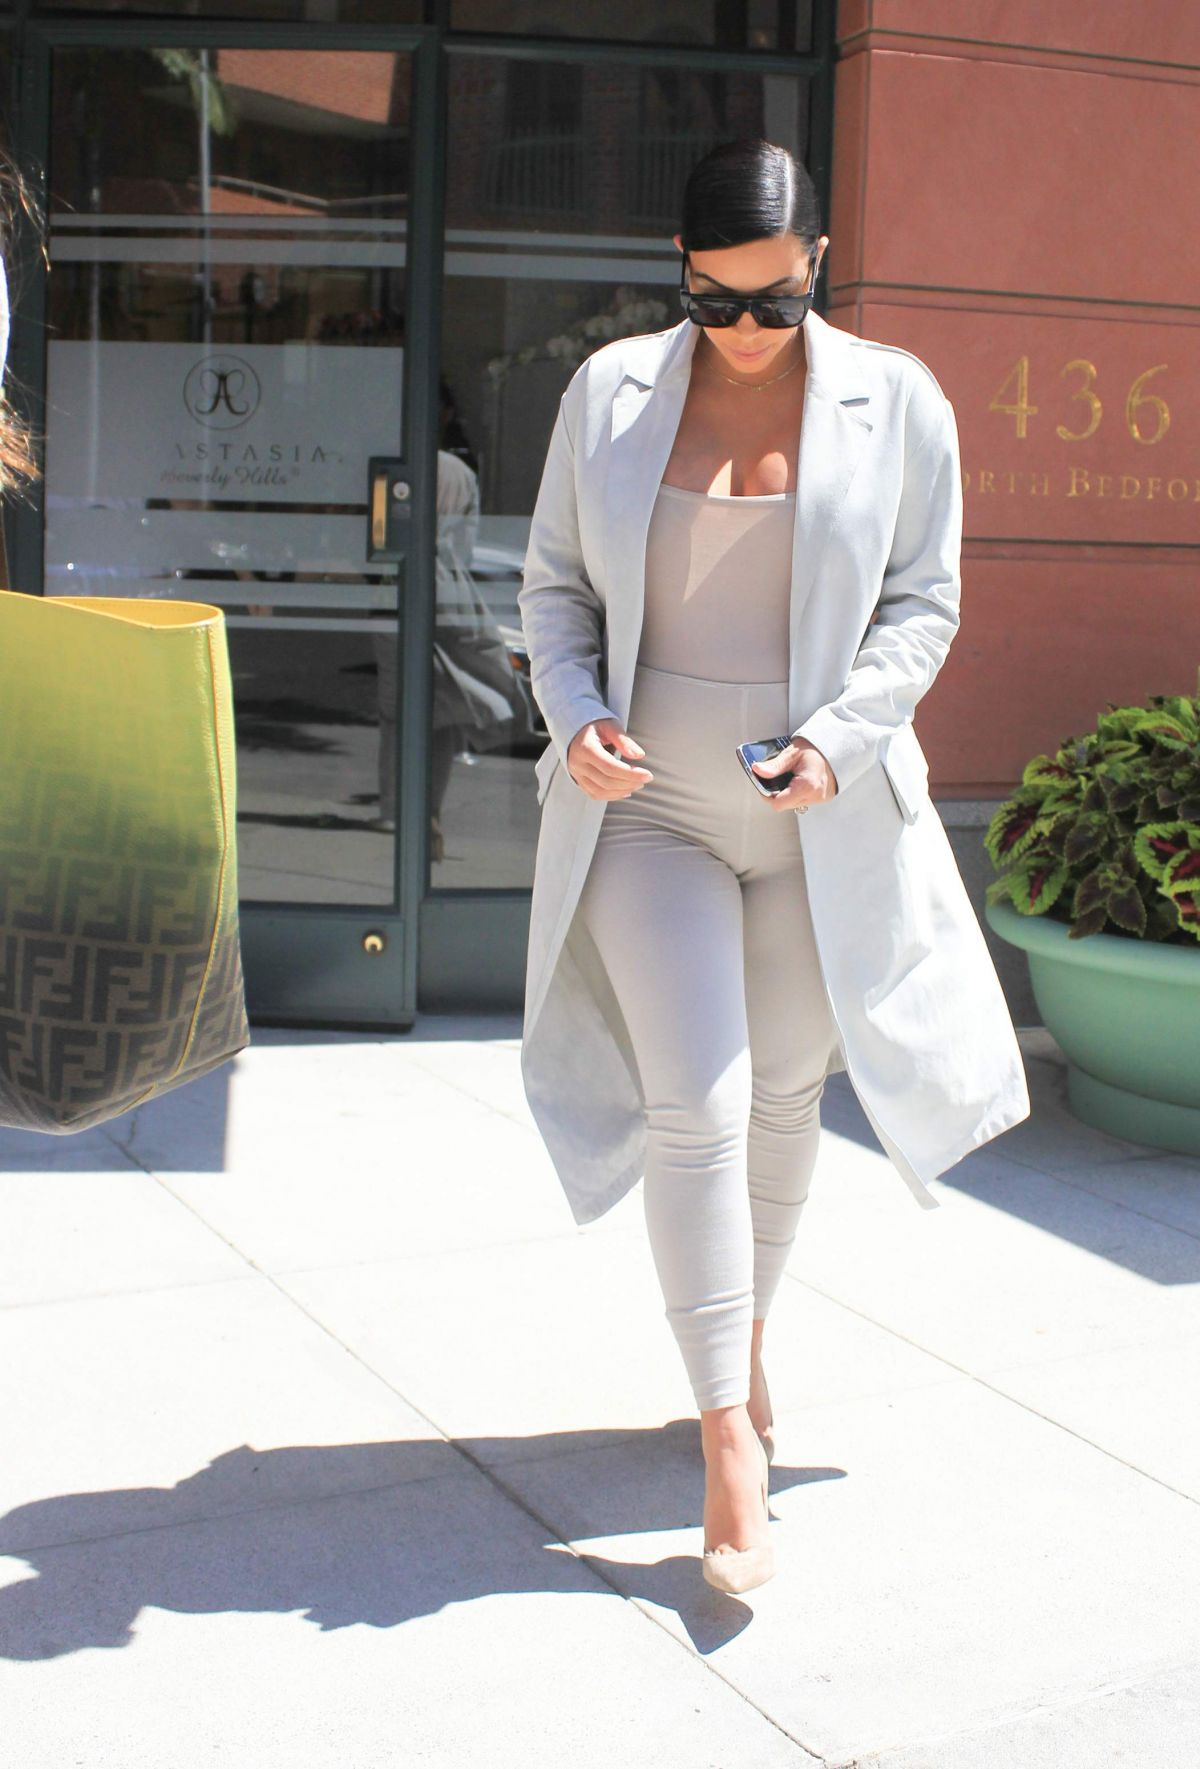 KIM KARDASHIAN Out and About in Los Angeles 08/28/2015